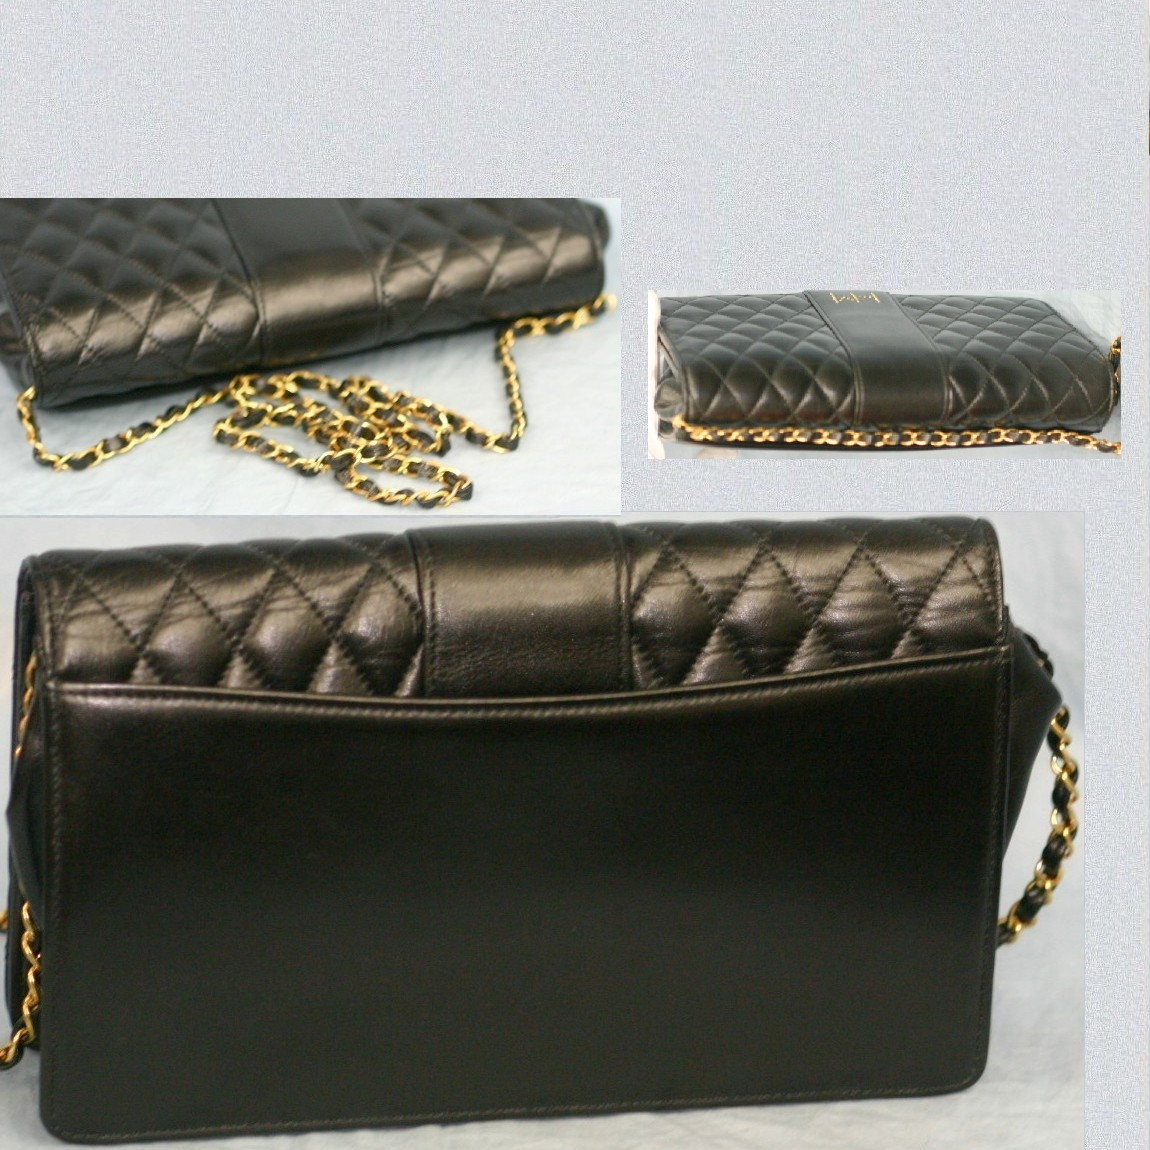 Real nice Hanae Mori for women 24 cm black leather quilted material with a shoulder clutch bag